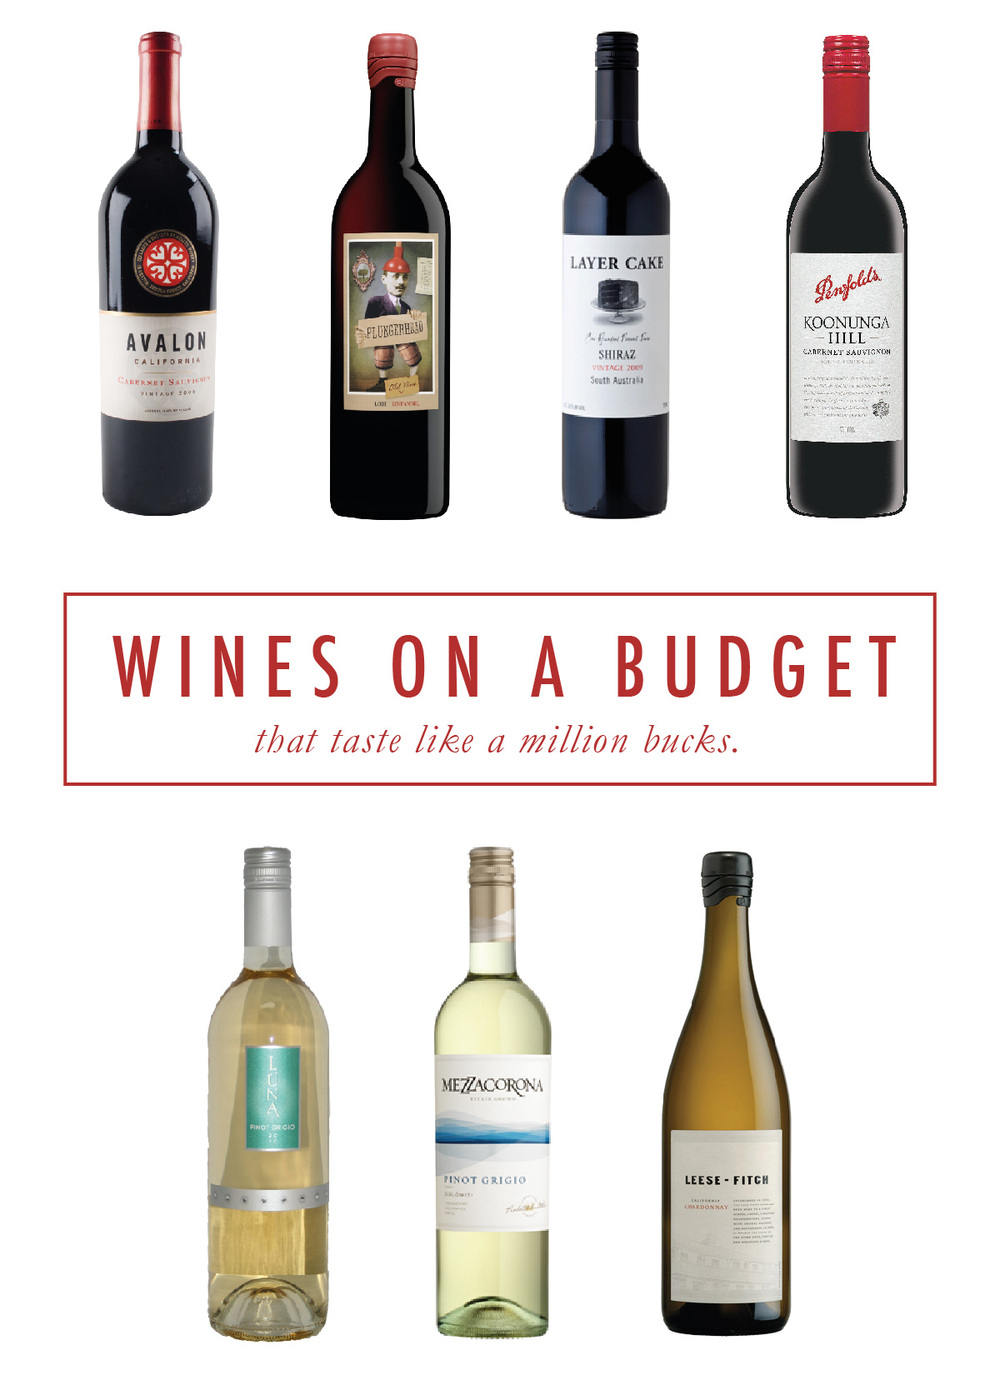 Wine on a Budget | That's Pretty Ace